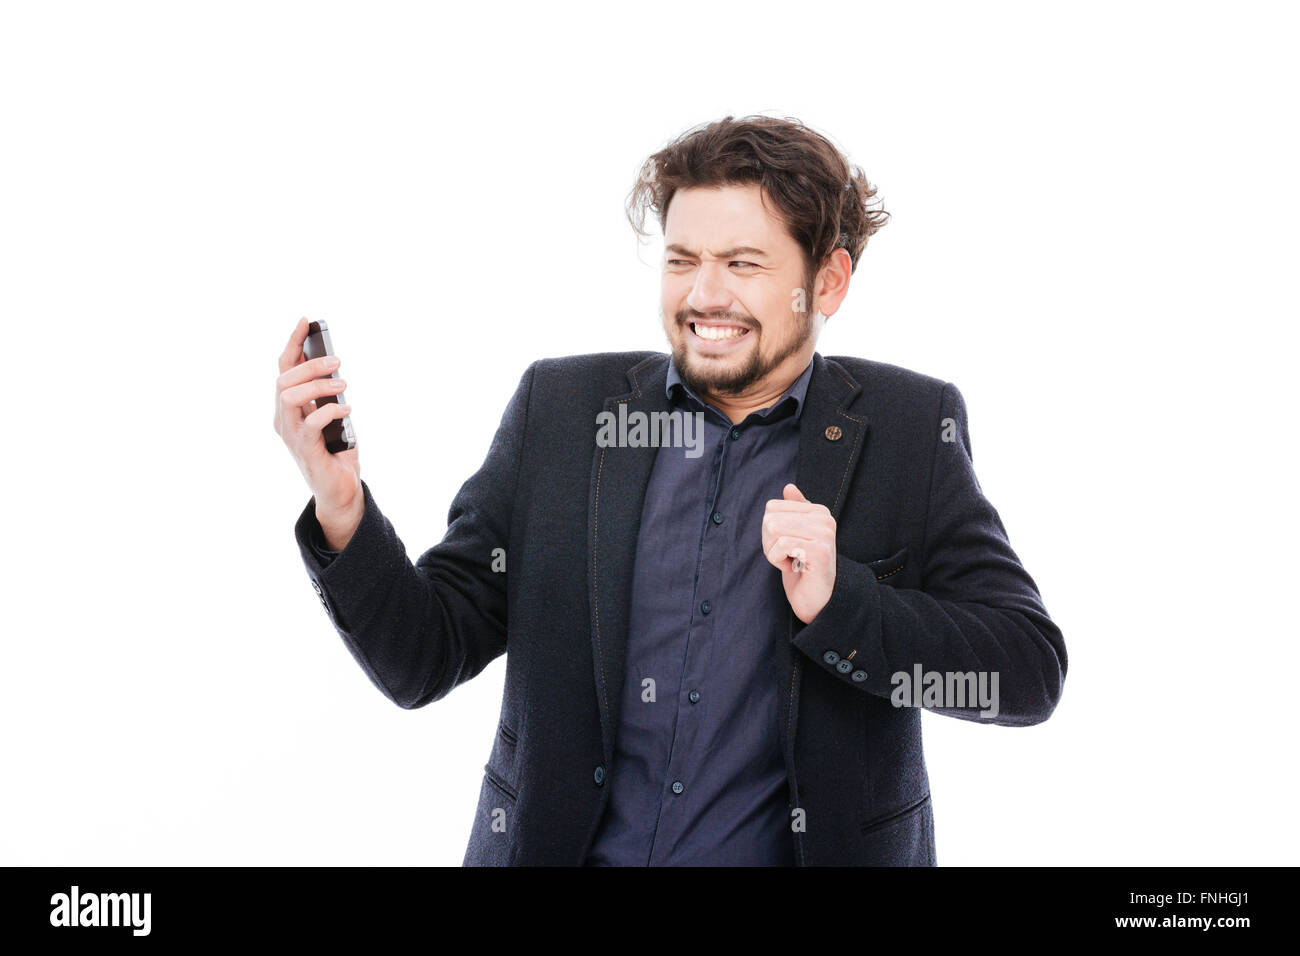 Businessman taking a bad phone call isolated on a white background - Stock Image